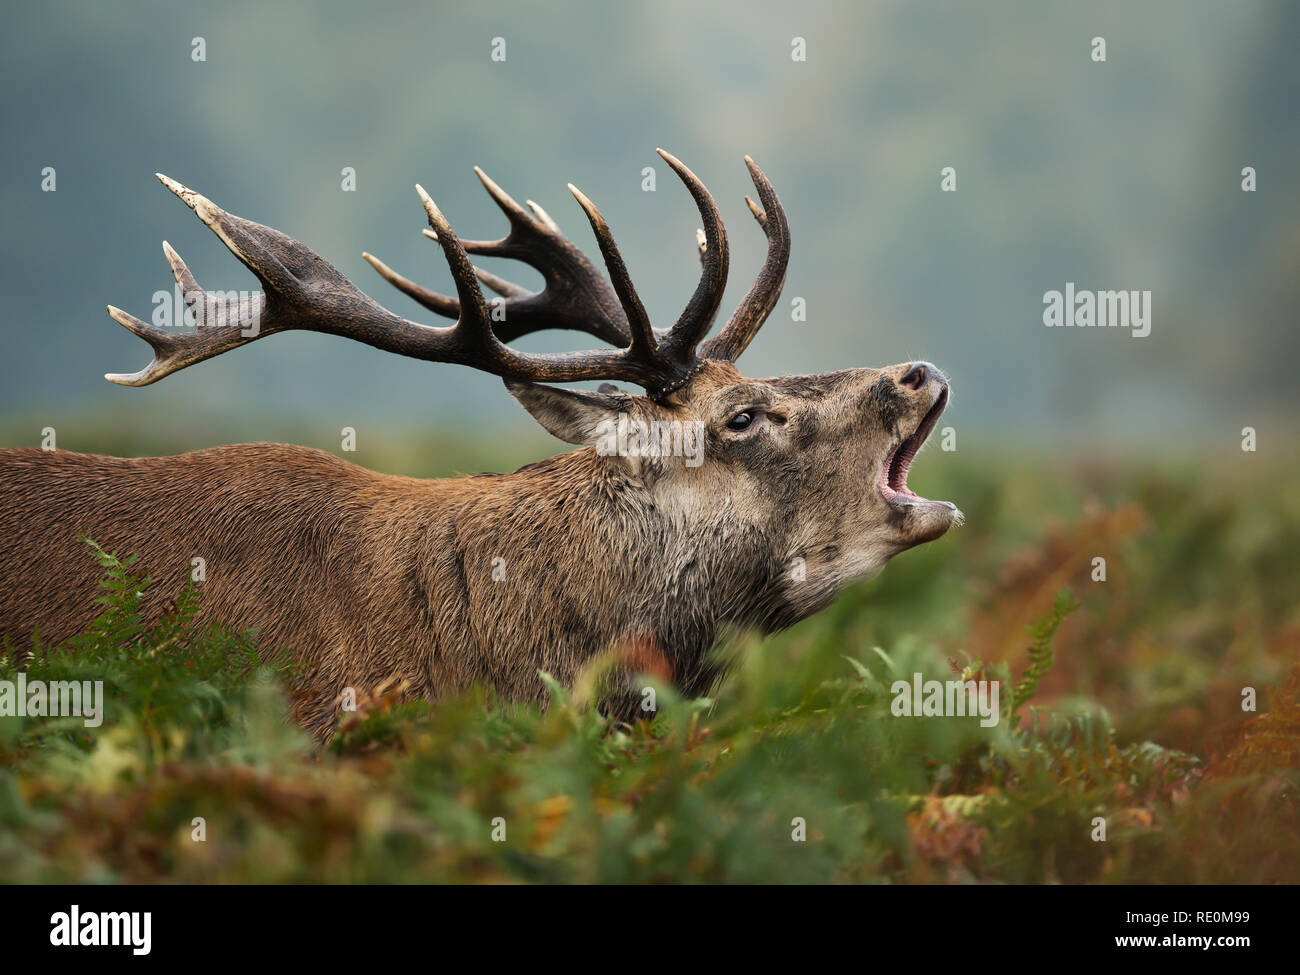 Close-up of red deer stag bellowing during rutting season in autumn, UK. - Stock Image